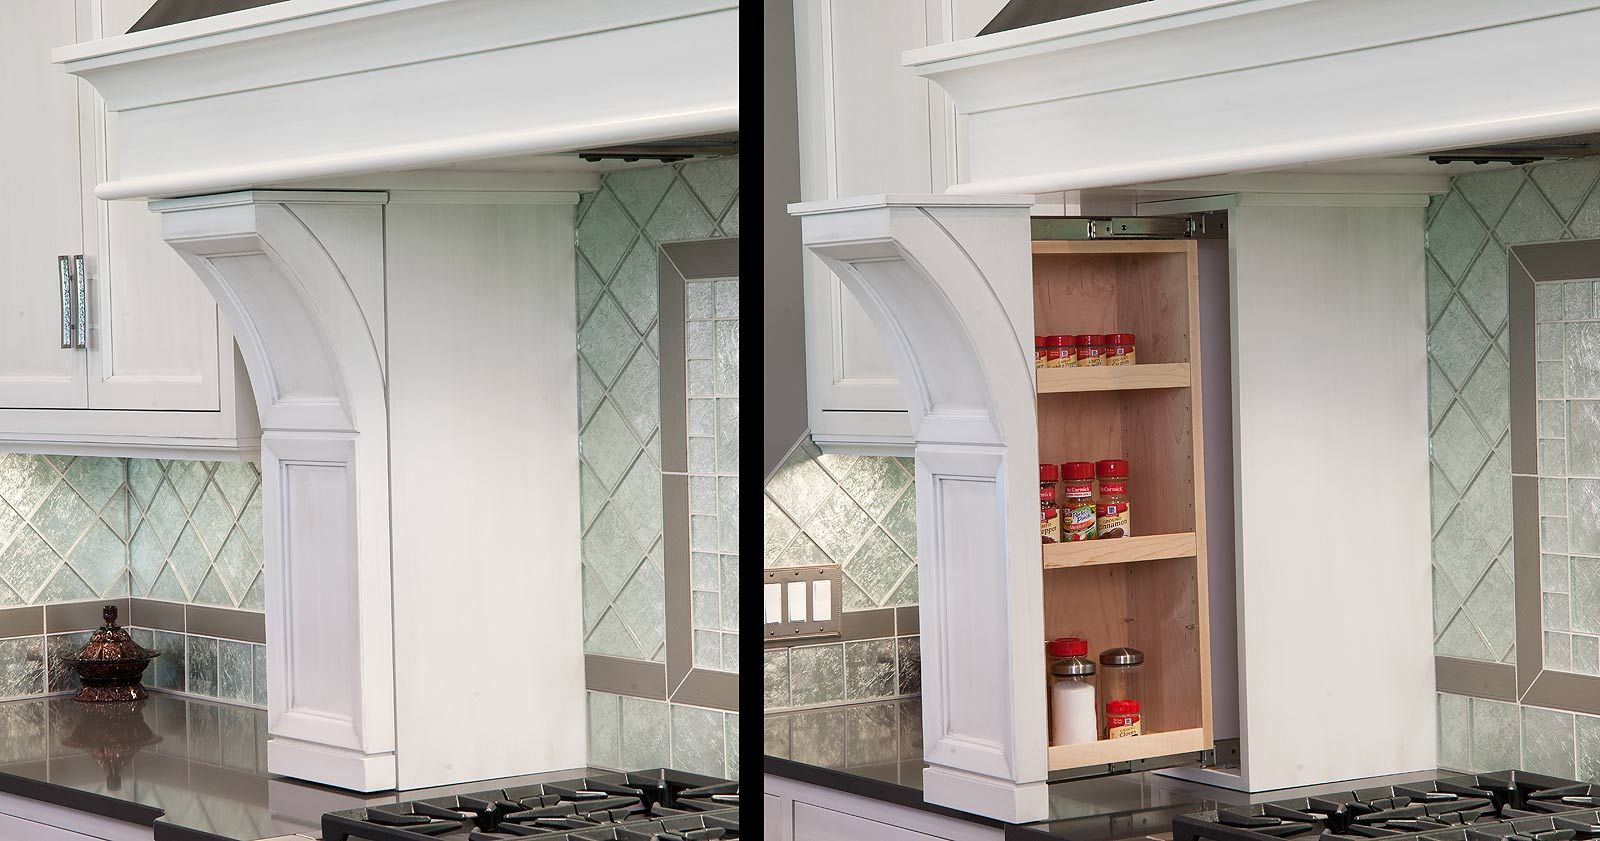 Best Kitchen Gallery: Spice Rack Pullout In The Range Hood Columns Cabi Accessories of Kitchen Hood And Rack on rachelxblog.com